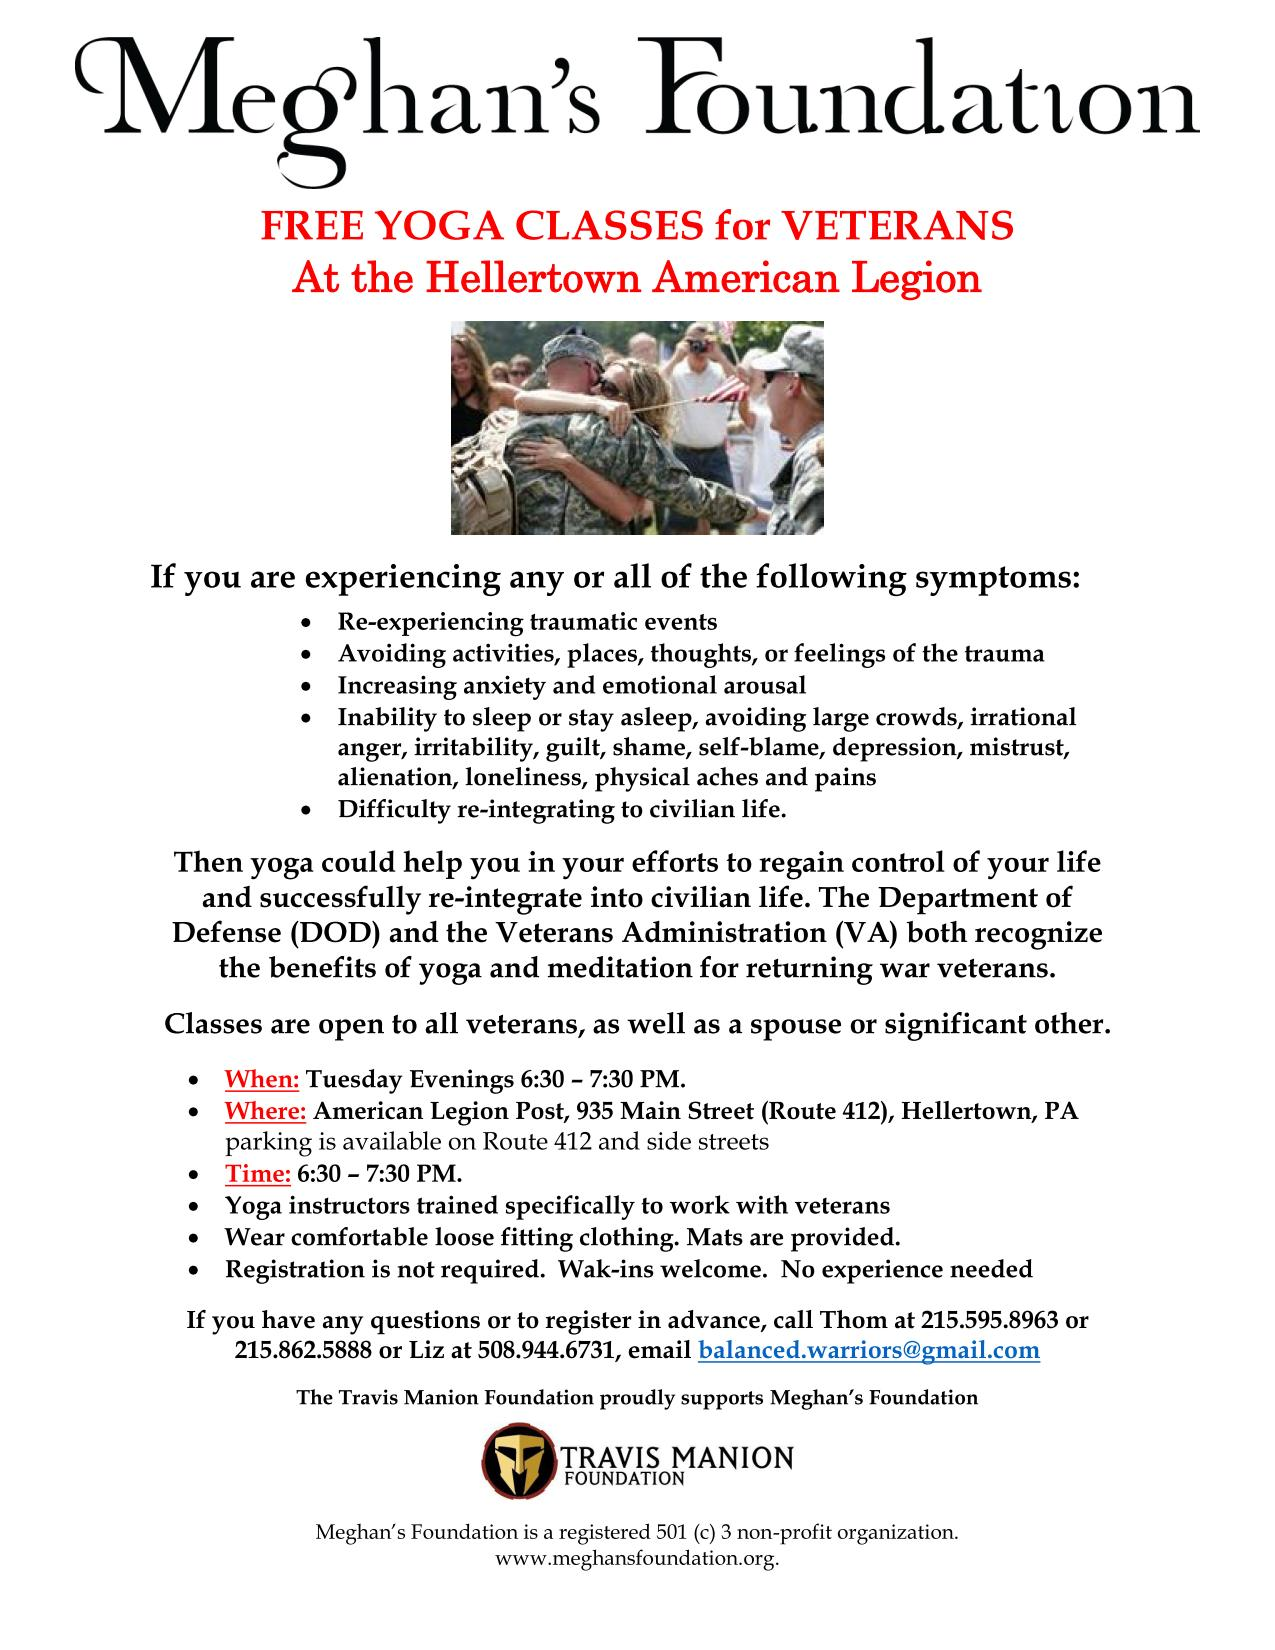 Meghan's Foundation Yoga Flyer Apr-May2014